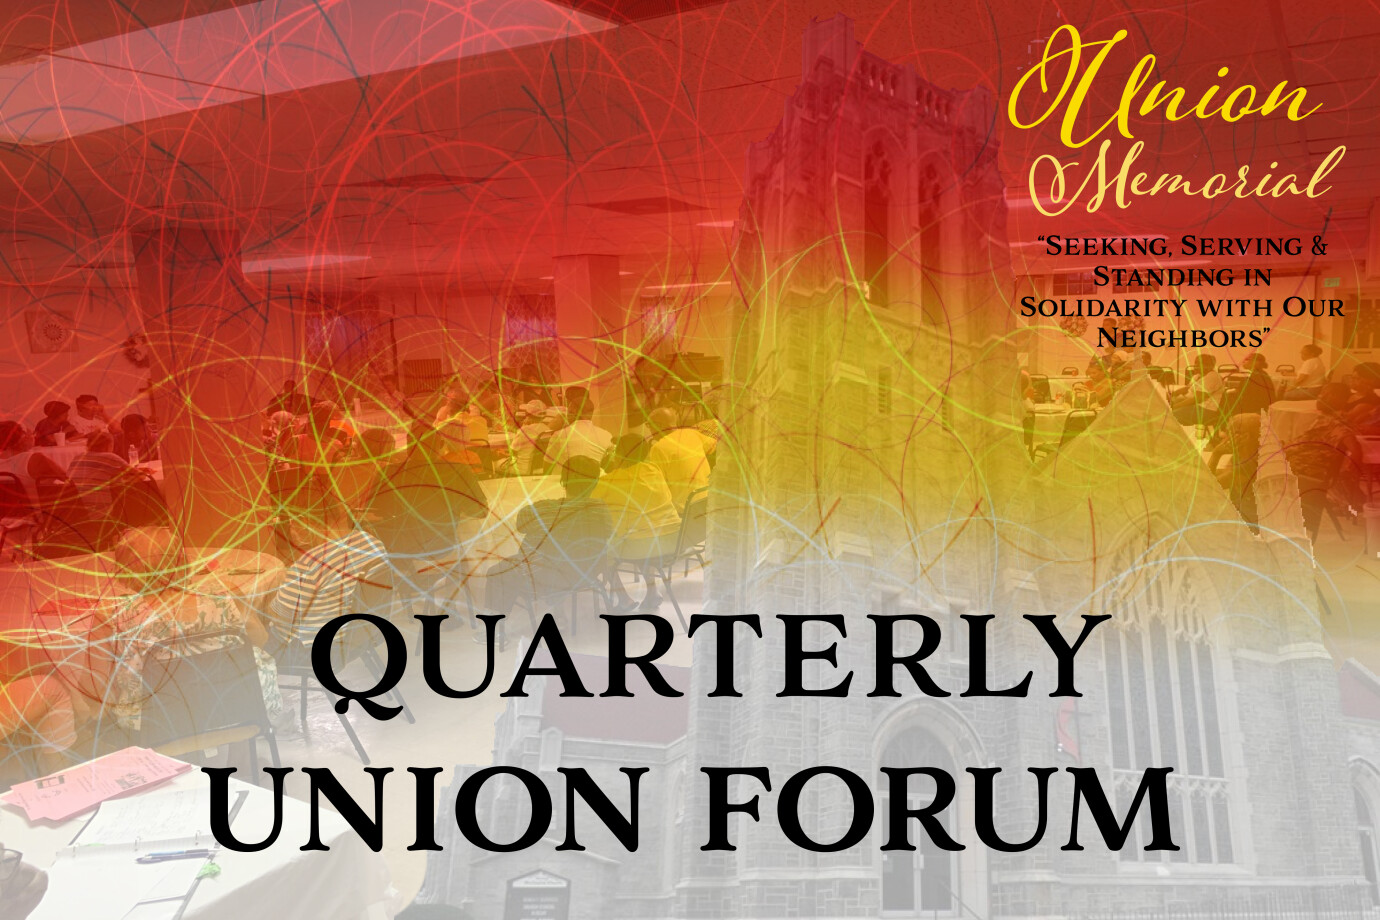 Quarterly Union Forum